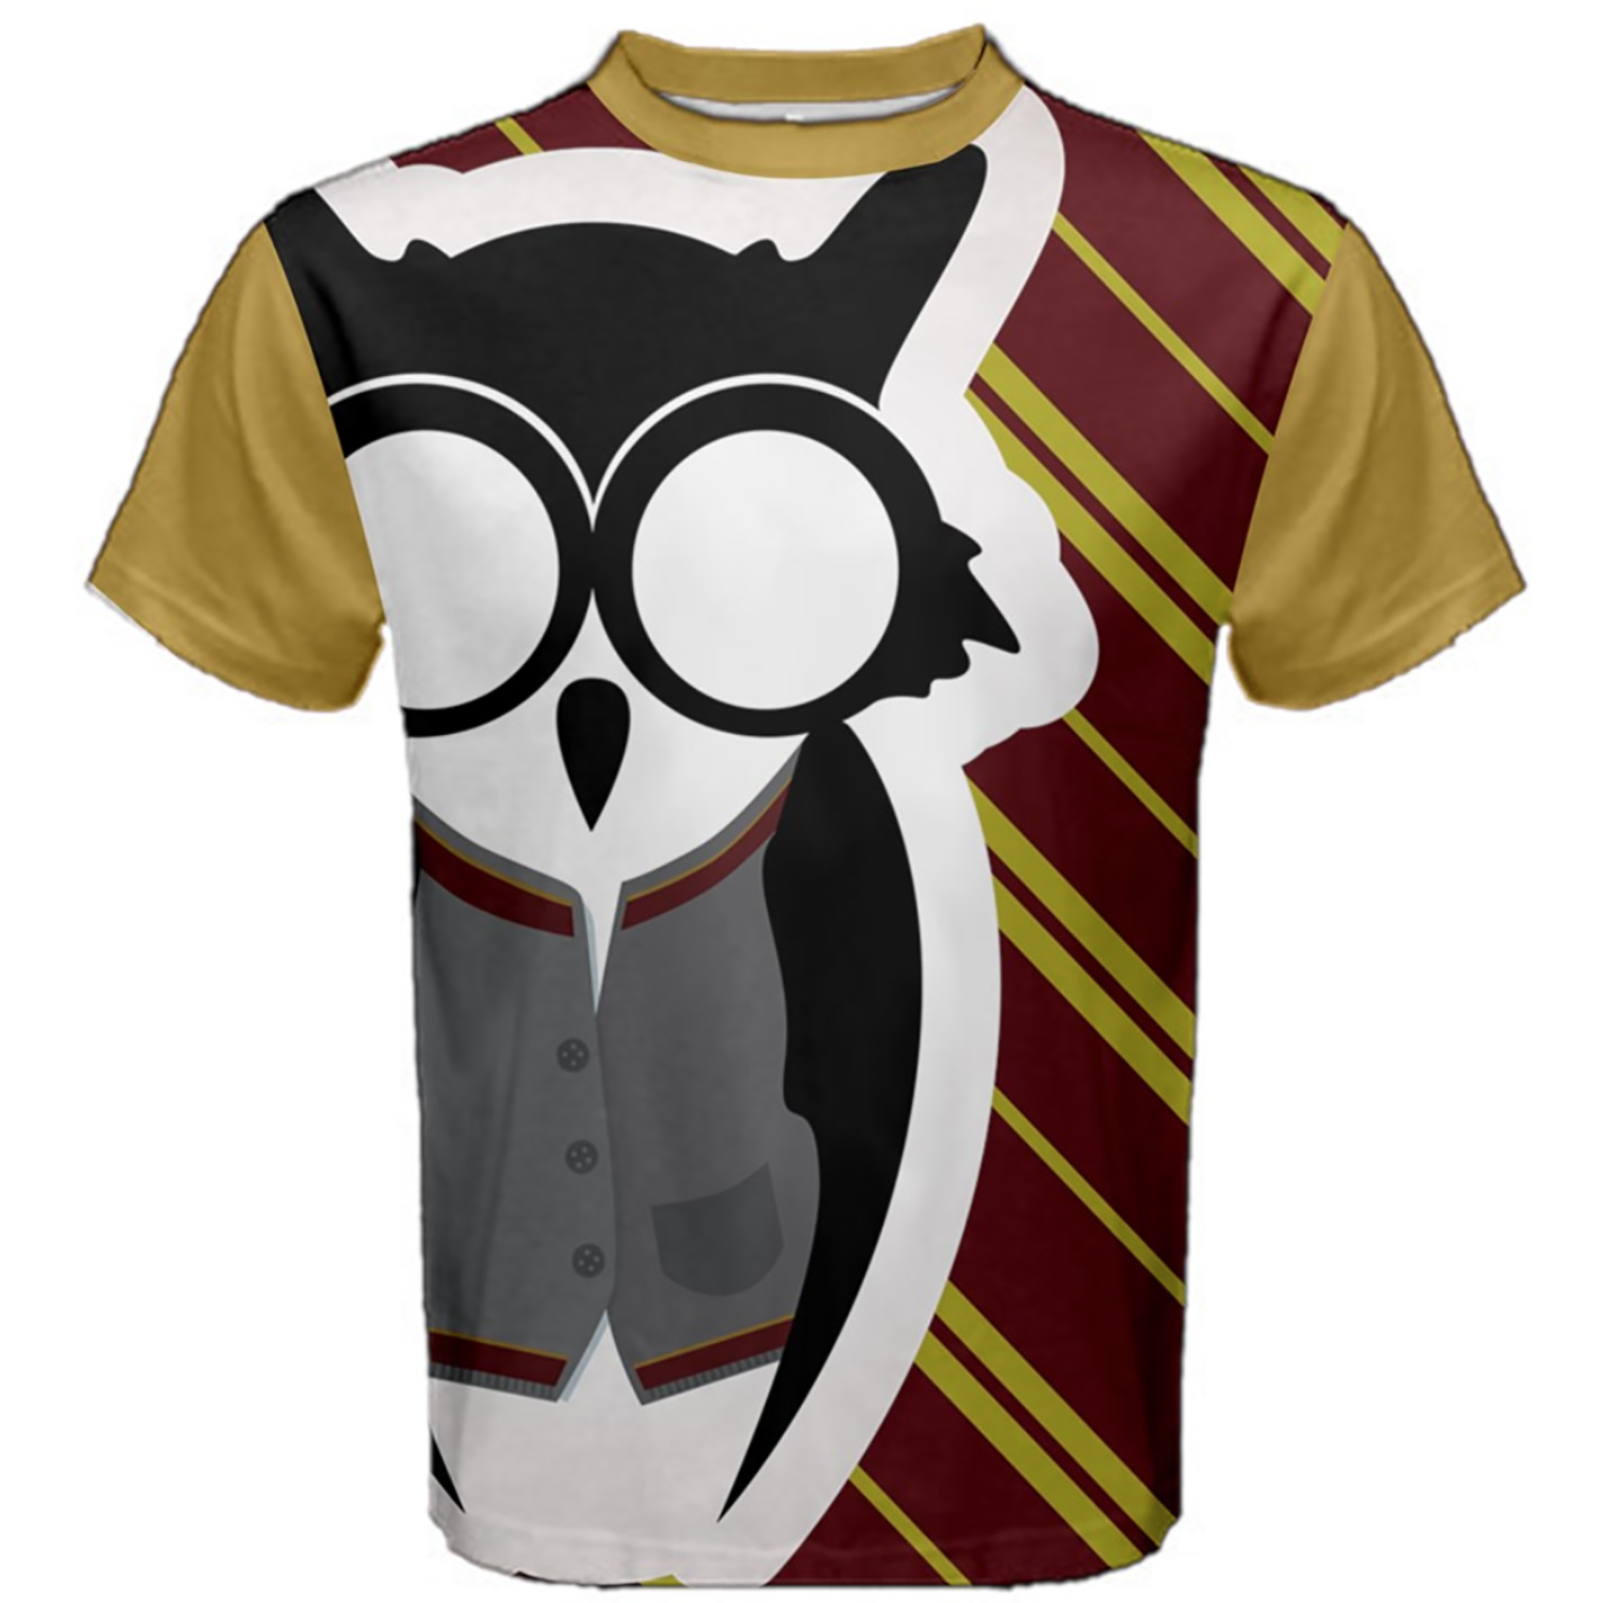 Owl Striped (Unisex) Cotton Tee - Inspired by Gryffindor House